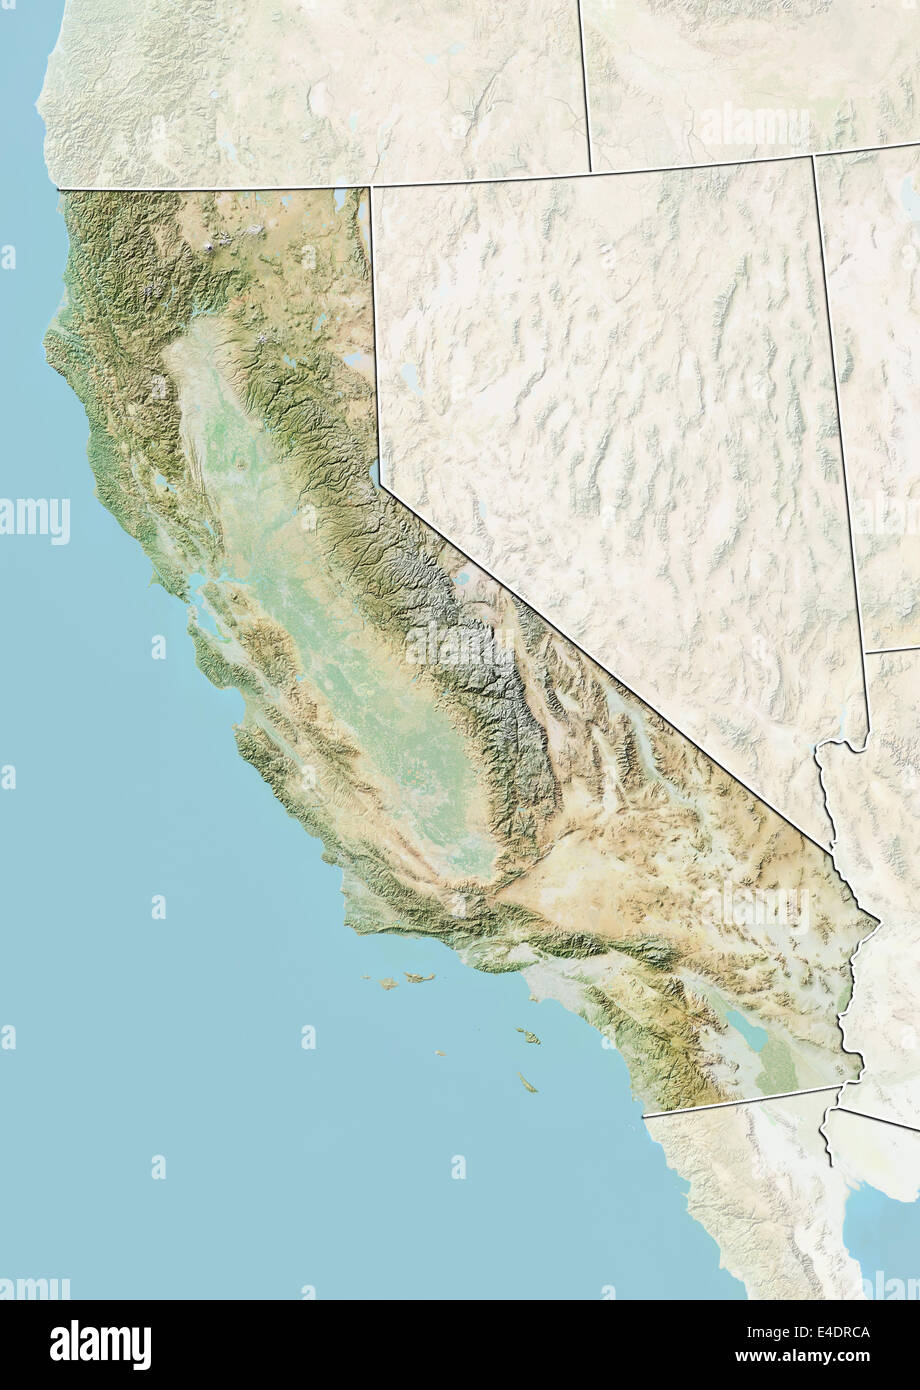 State of California, United States, Relief Map Stock Photo: 71603850 on